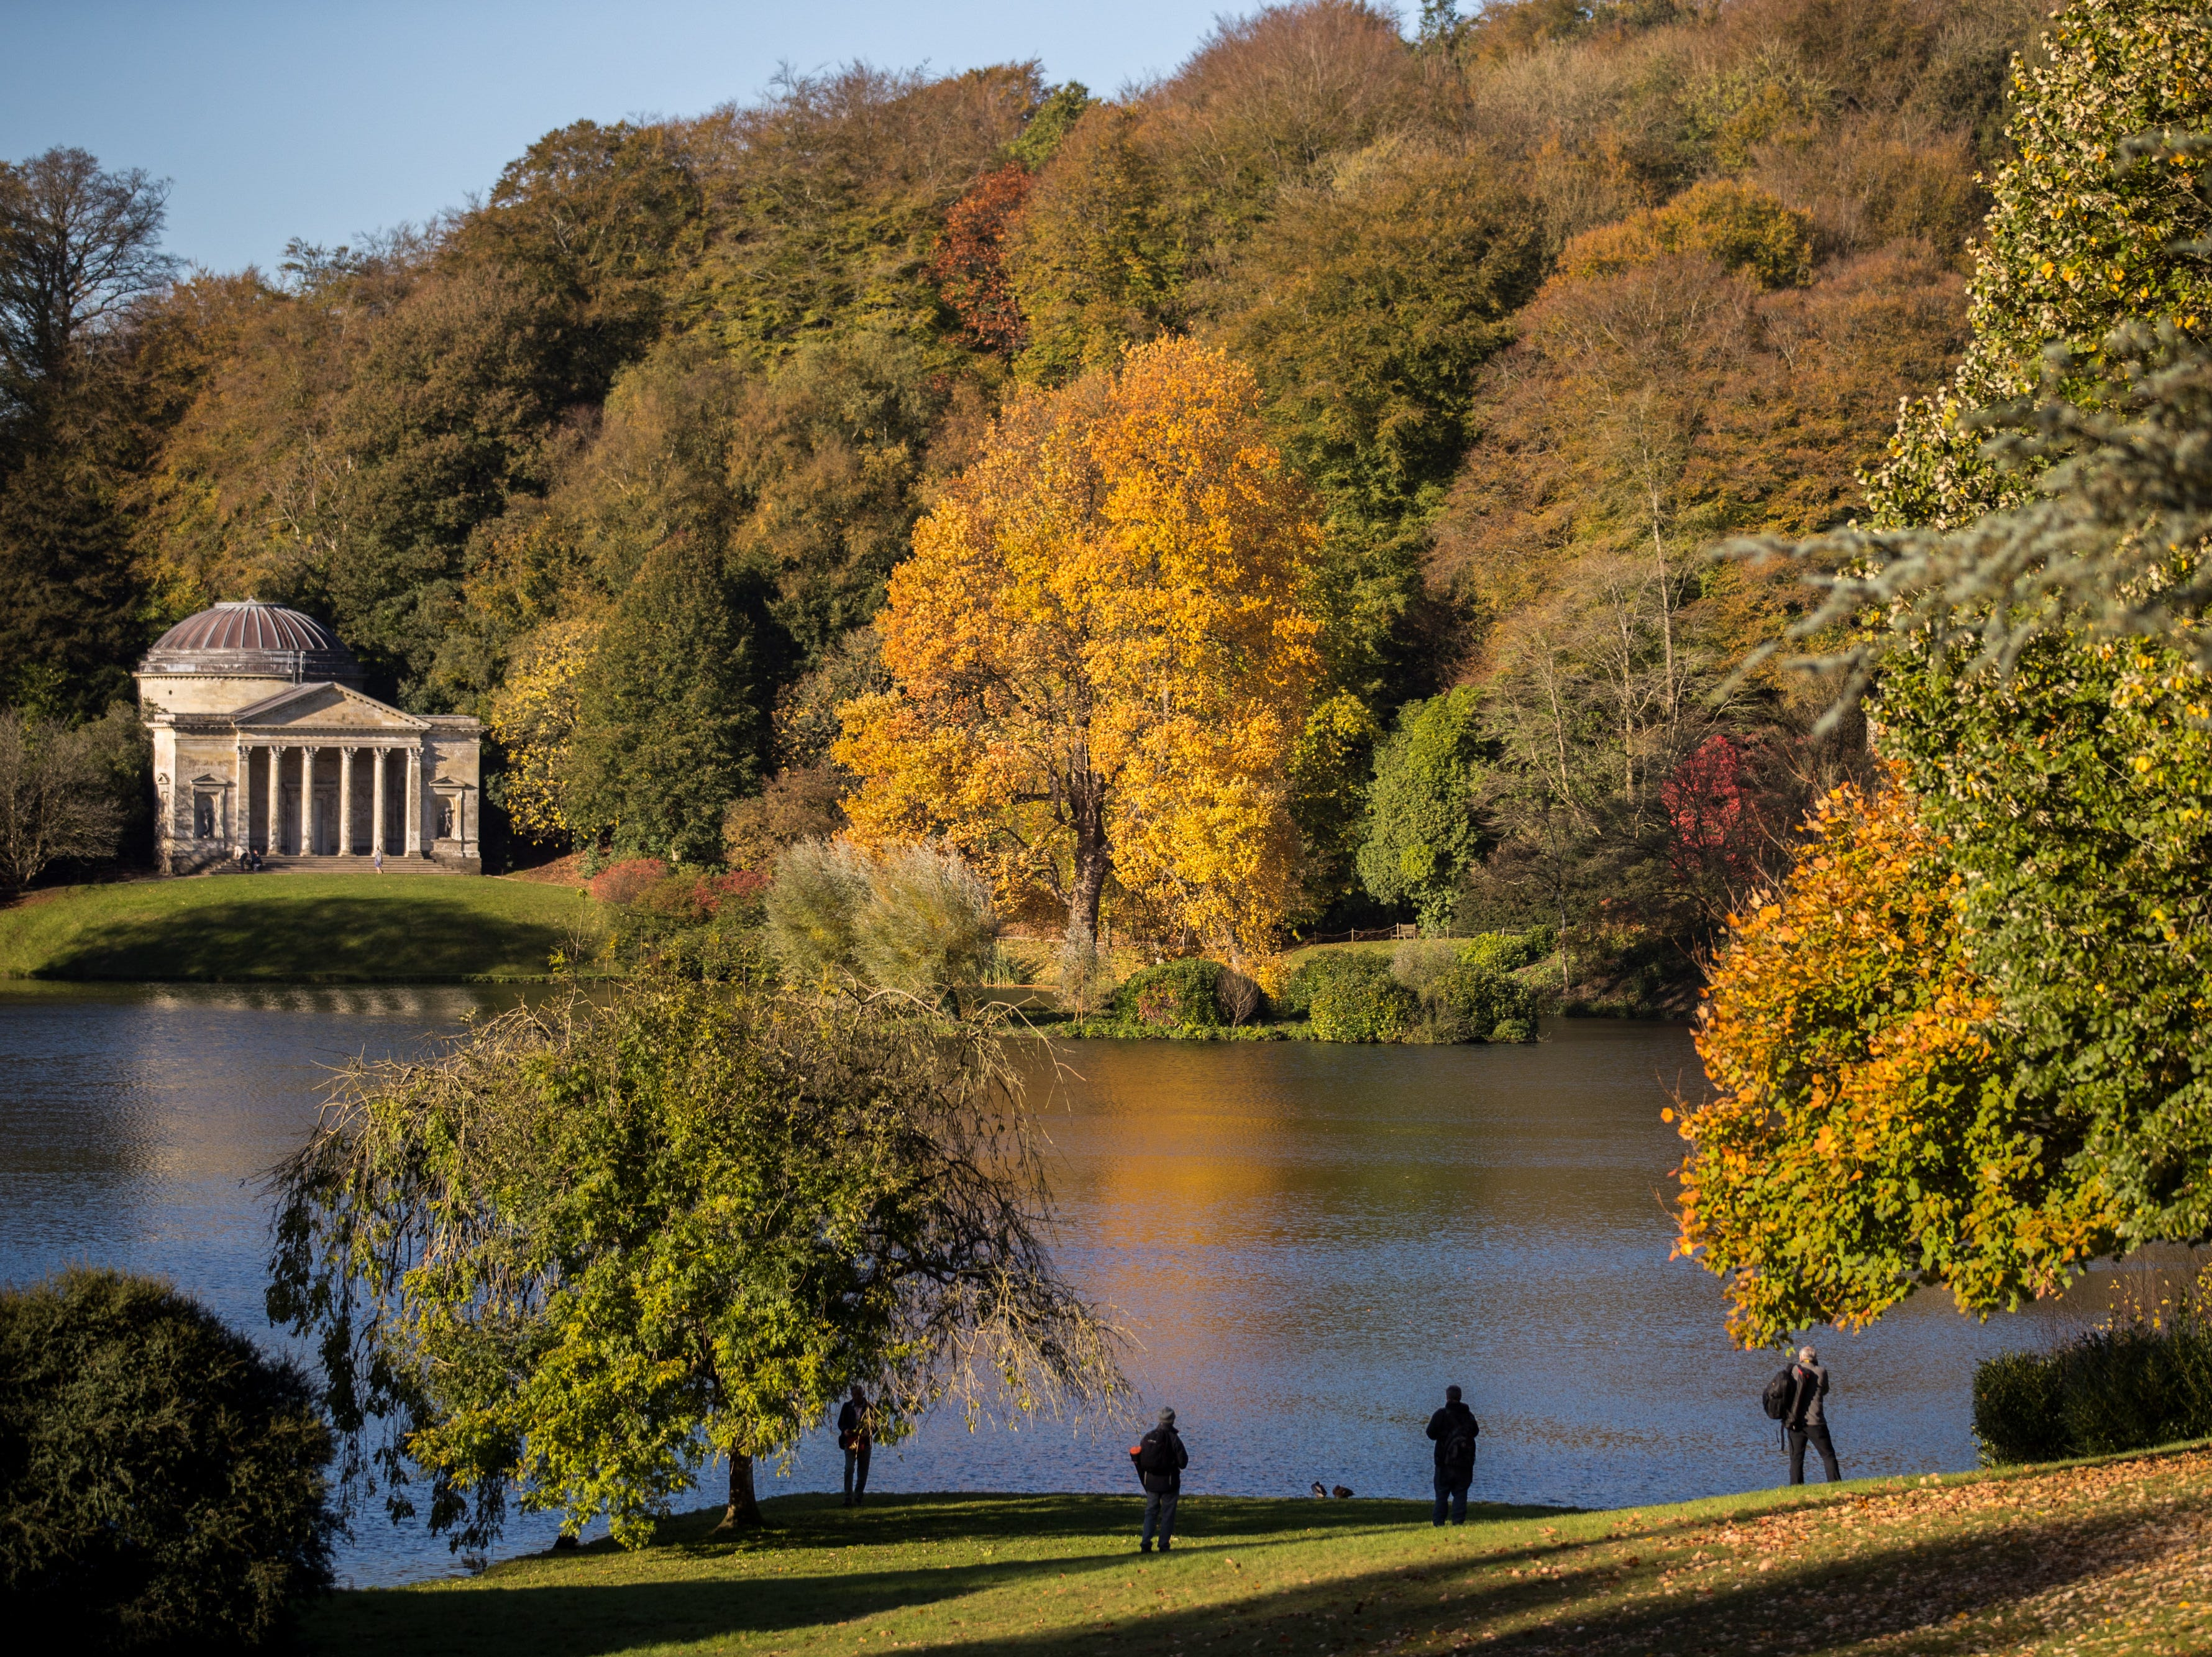 The sun shines on trees that are displaying their autumn colors surrounding the Palladian bridge and the lakeside Pantheon at the National Trust's Stourhead on Oct. 22, 2018 in Wiltshire, England.  Forecasters are warning that sub-zero temperatures and arctic winds will reach some parts of the UK by the end of this week, bringing to an end a stretch of mild autumn weather, which saw some areas in the south-east enjoying temperatures hitting 68F on the weekend.